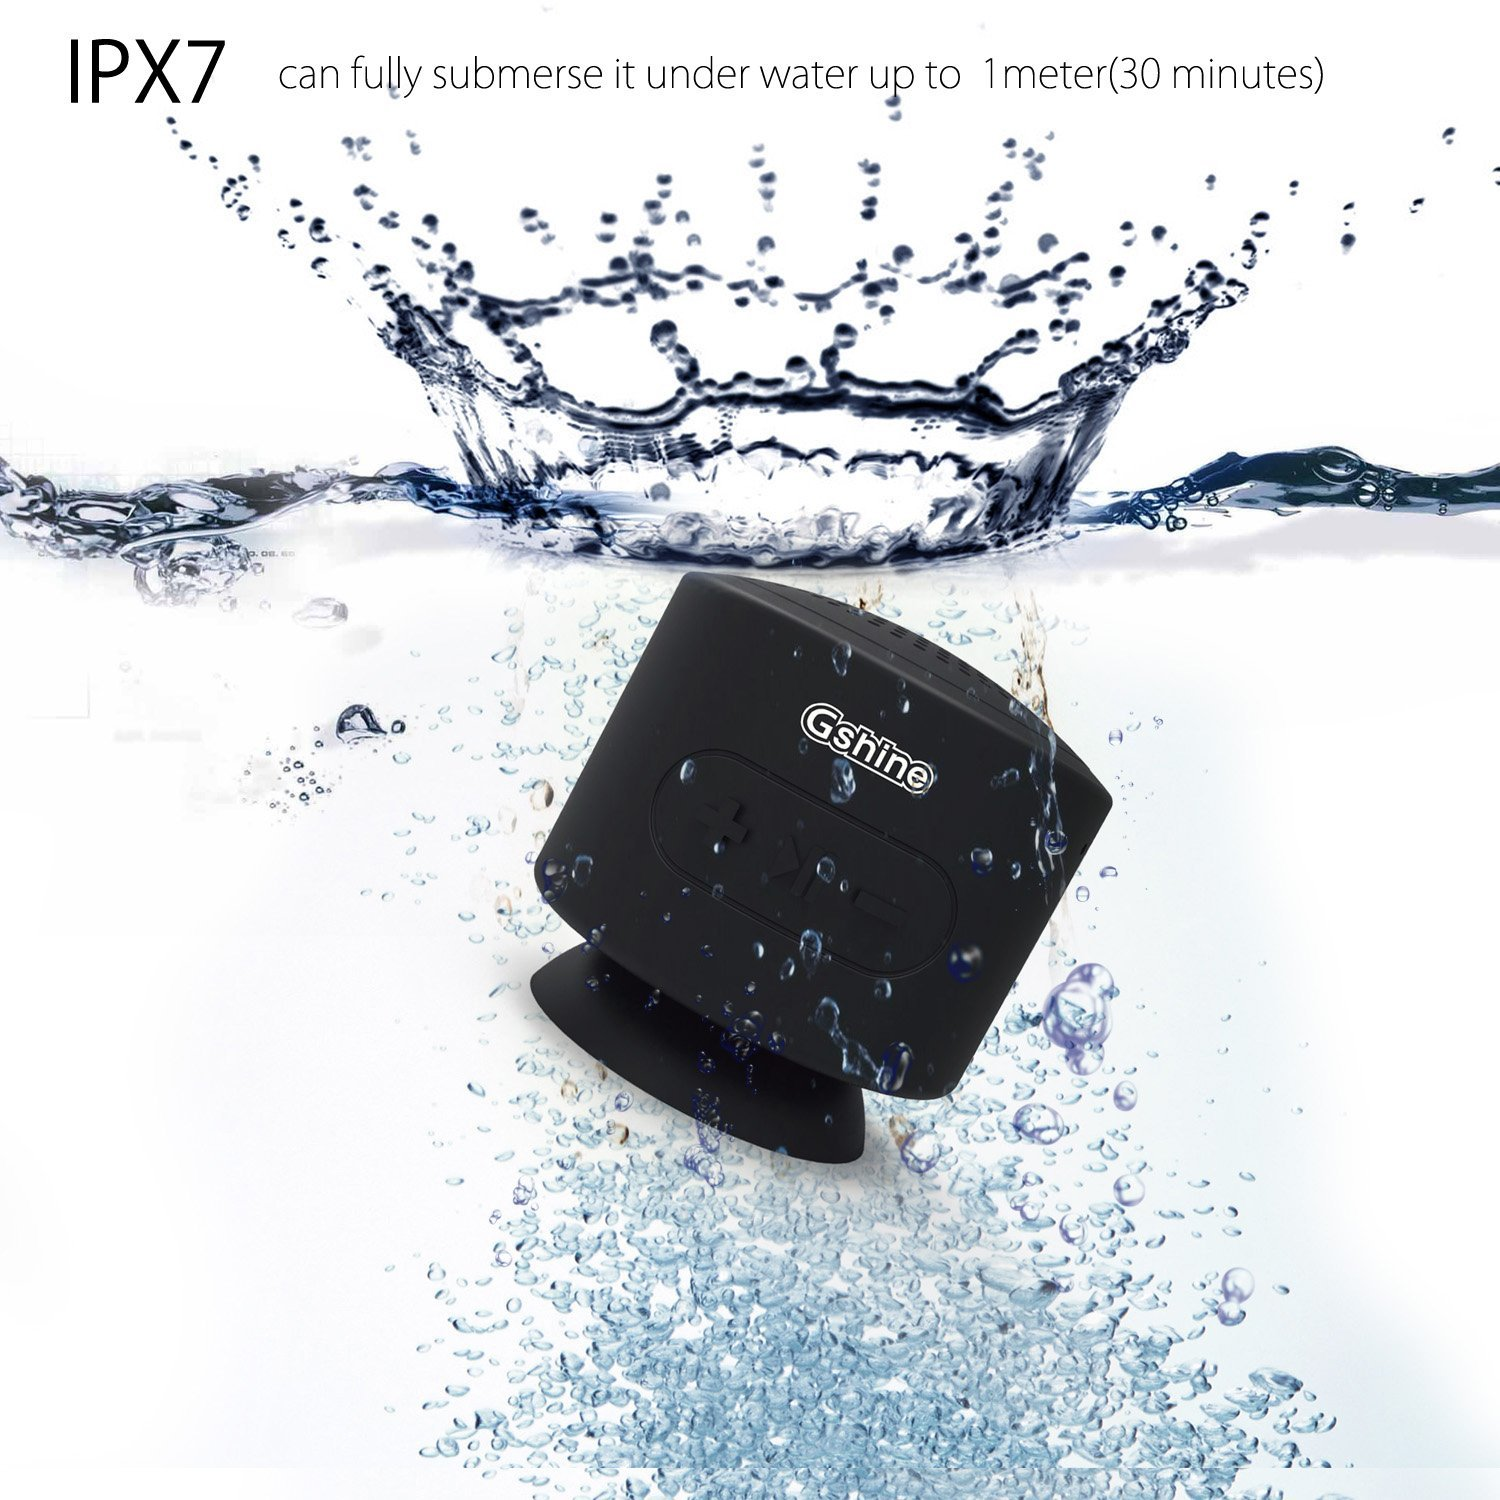 Gshine 8 Watt IPX7 Waterproof Bluetooth Speakers #grAS